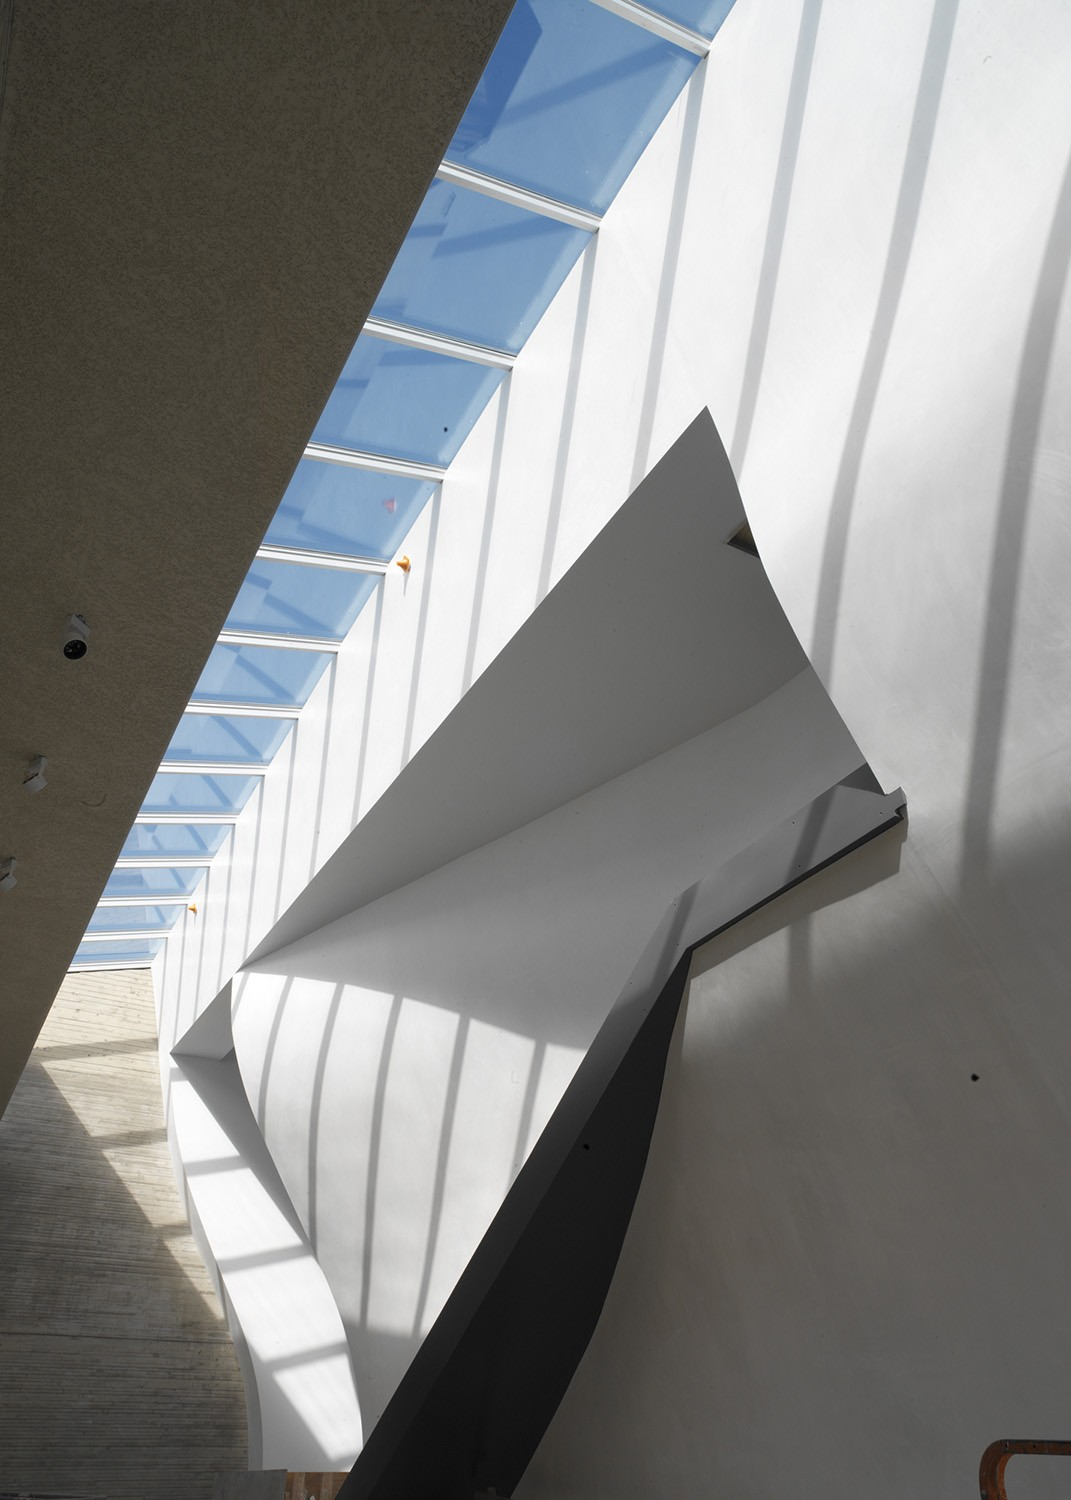 https://s3.us-east-2.amazonaws.com/steven-holl/uploads/projects/project-images/StevenHollArchitects_Whitney_A0337_WV.jpg